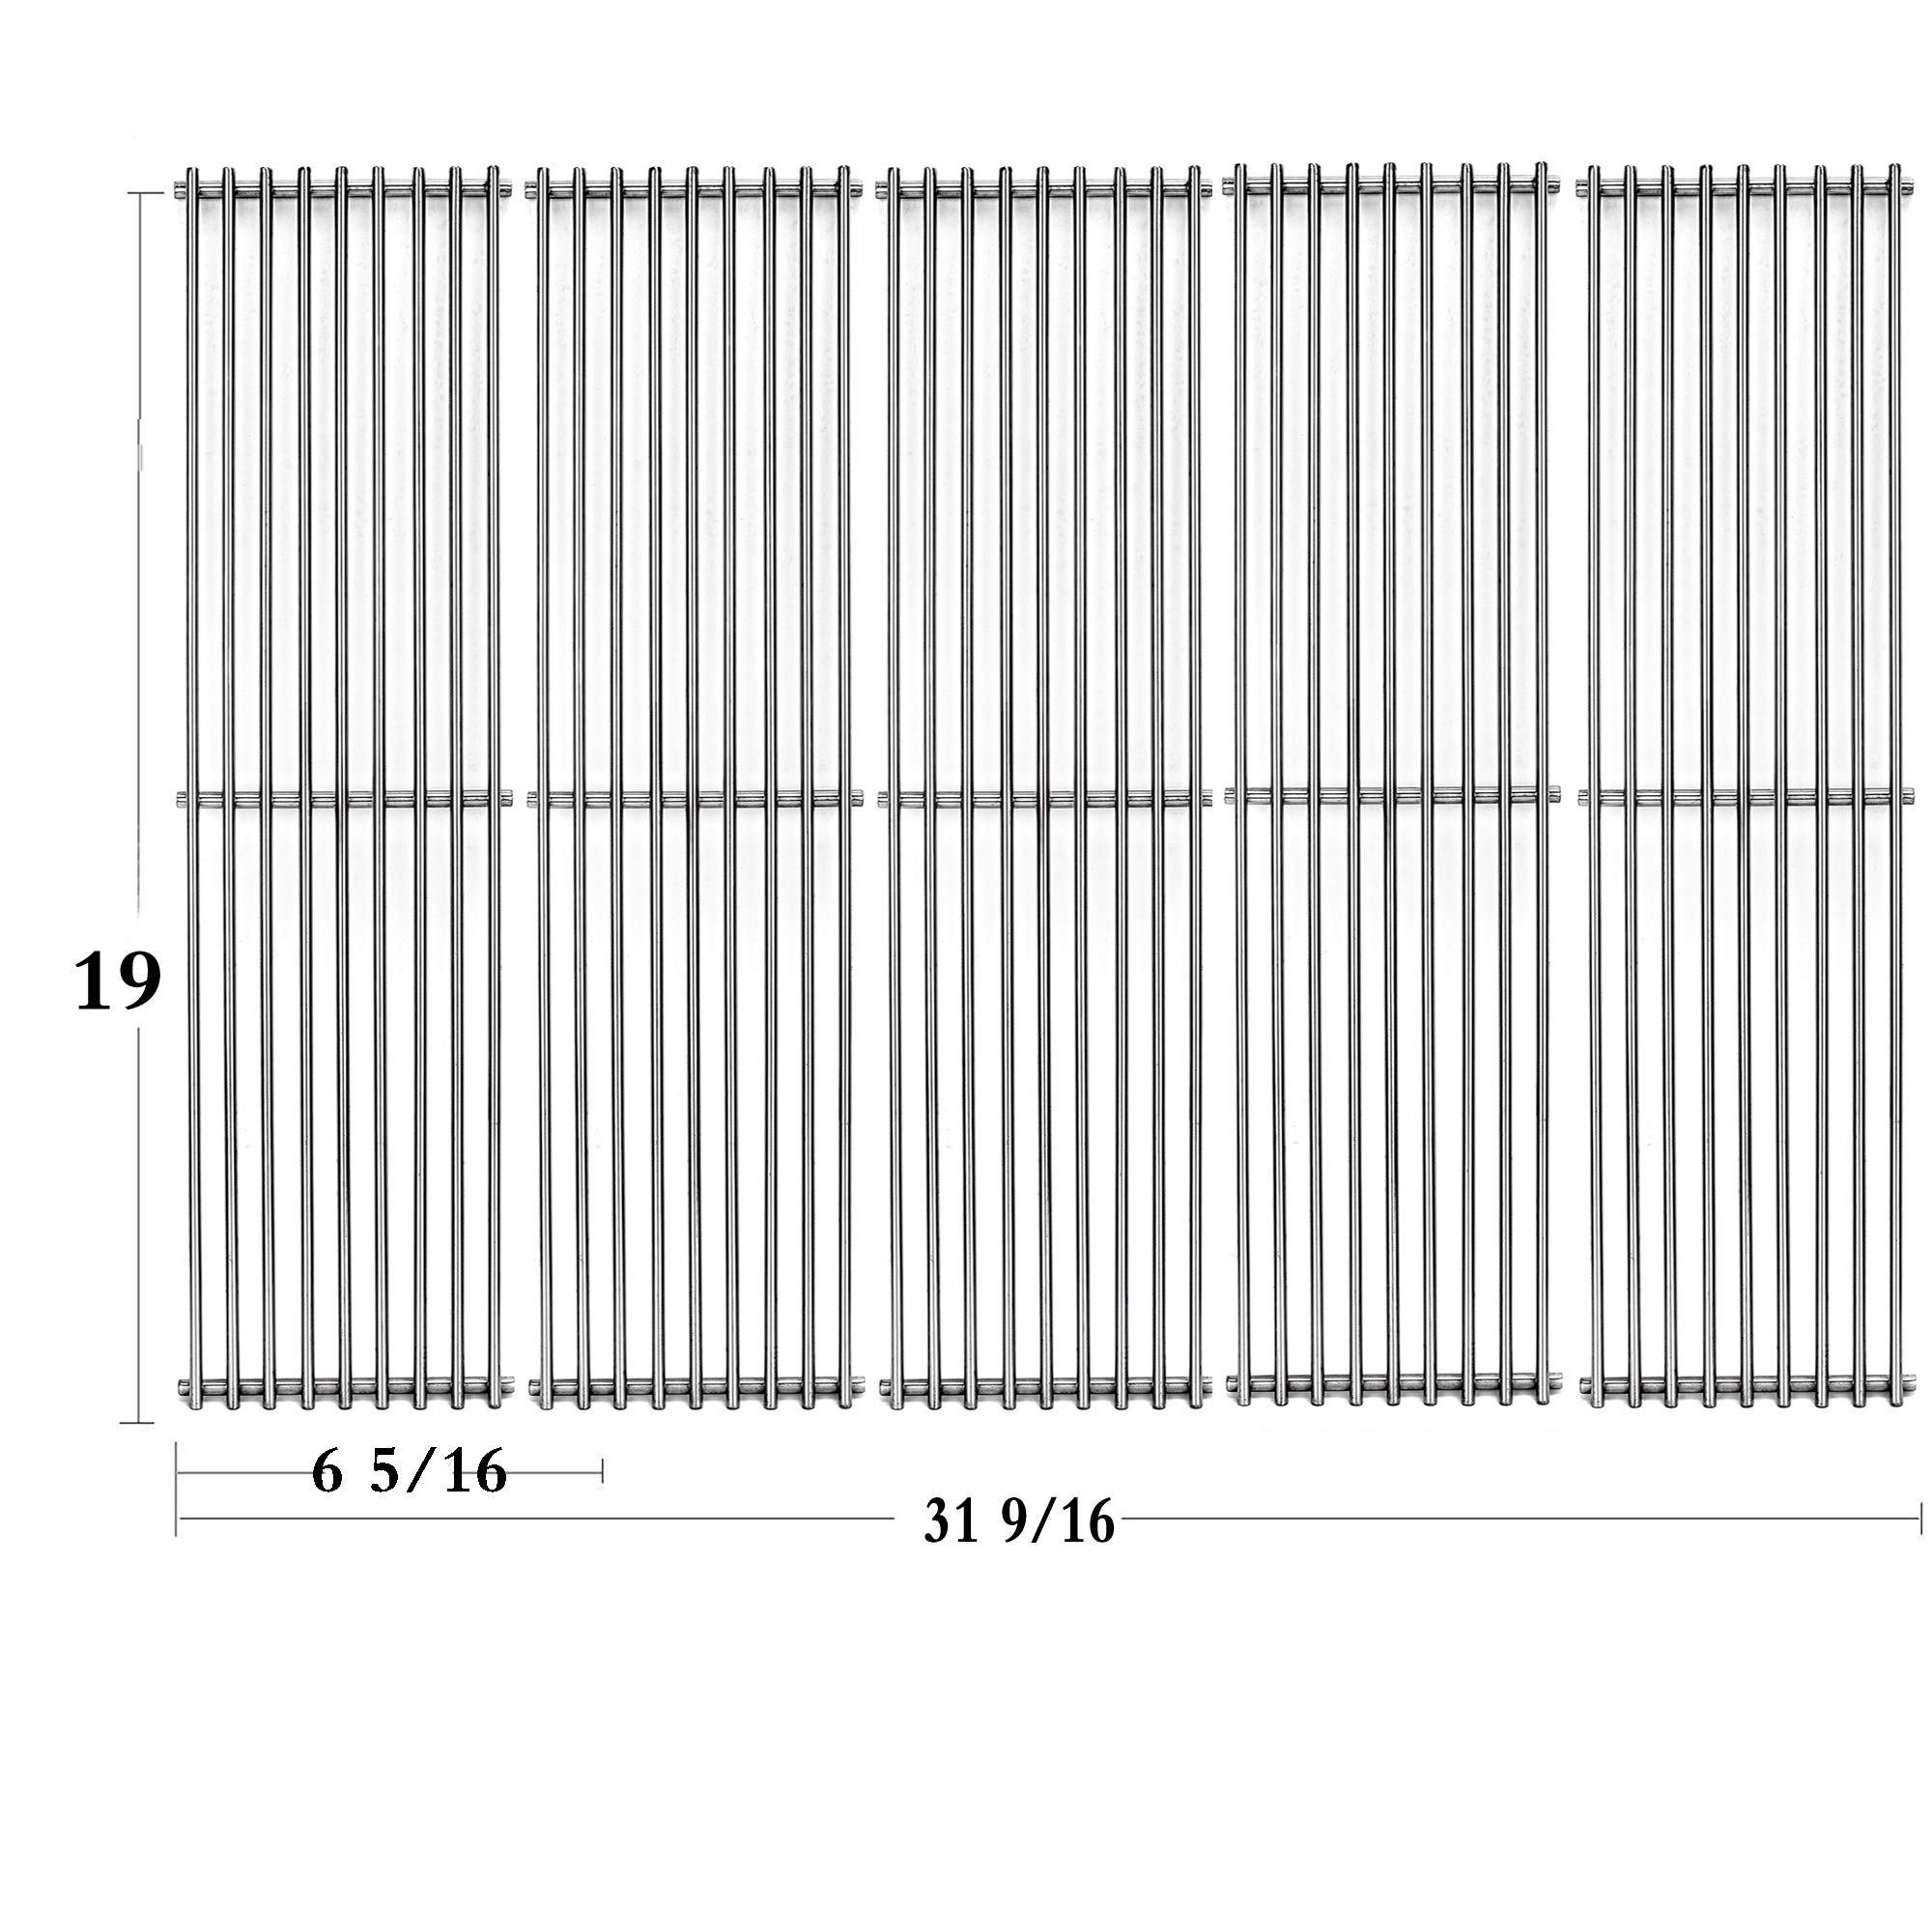 Votenli S5163A (5-Pack) Stainless Steel Cooking Grid Grates Replacement for Brinkmann 810-1575-W,Kenmore 141.16123, 141.16233, 141.16235, 141.16313, 141.16313800, 141.16315 by Votenli